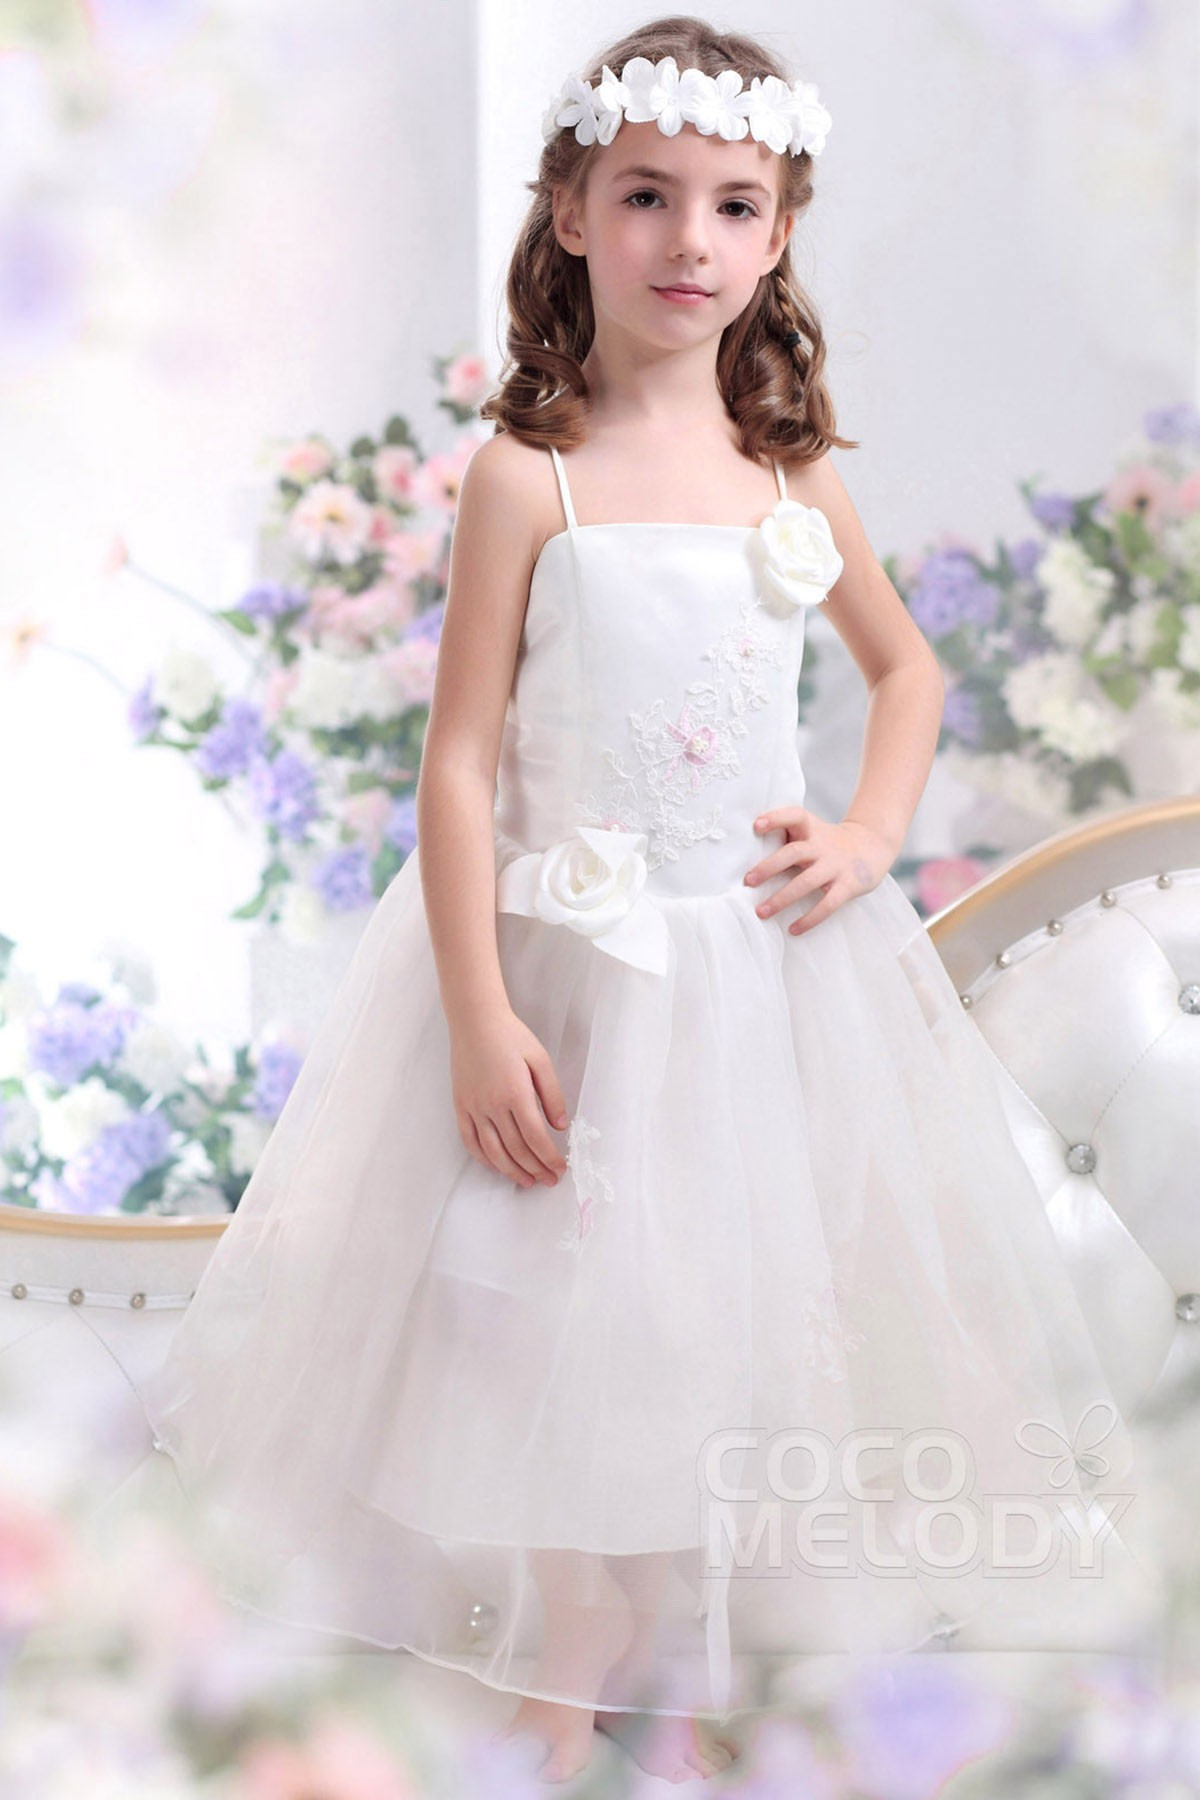 Cocomelody A Line Spaghetti Strap Ankle Length Organza Flower Girl